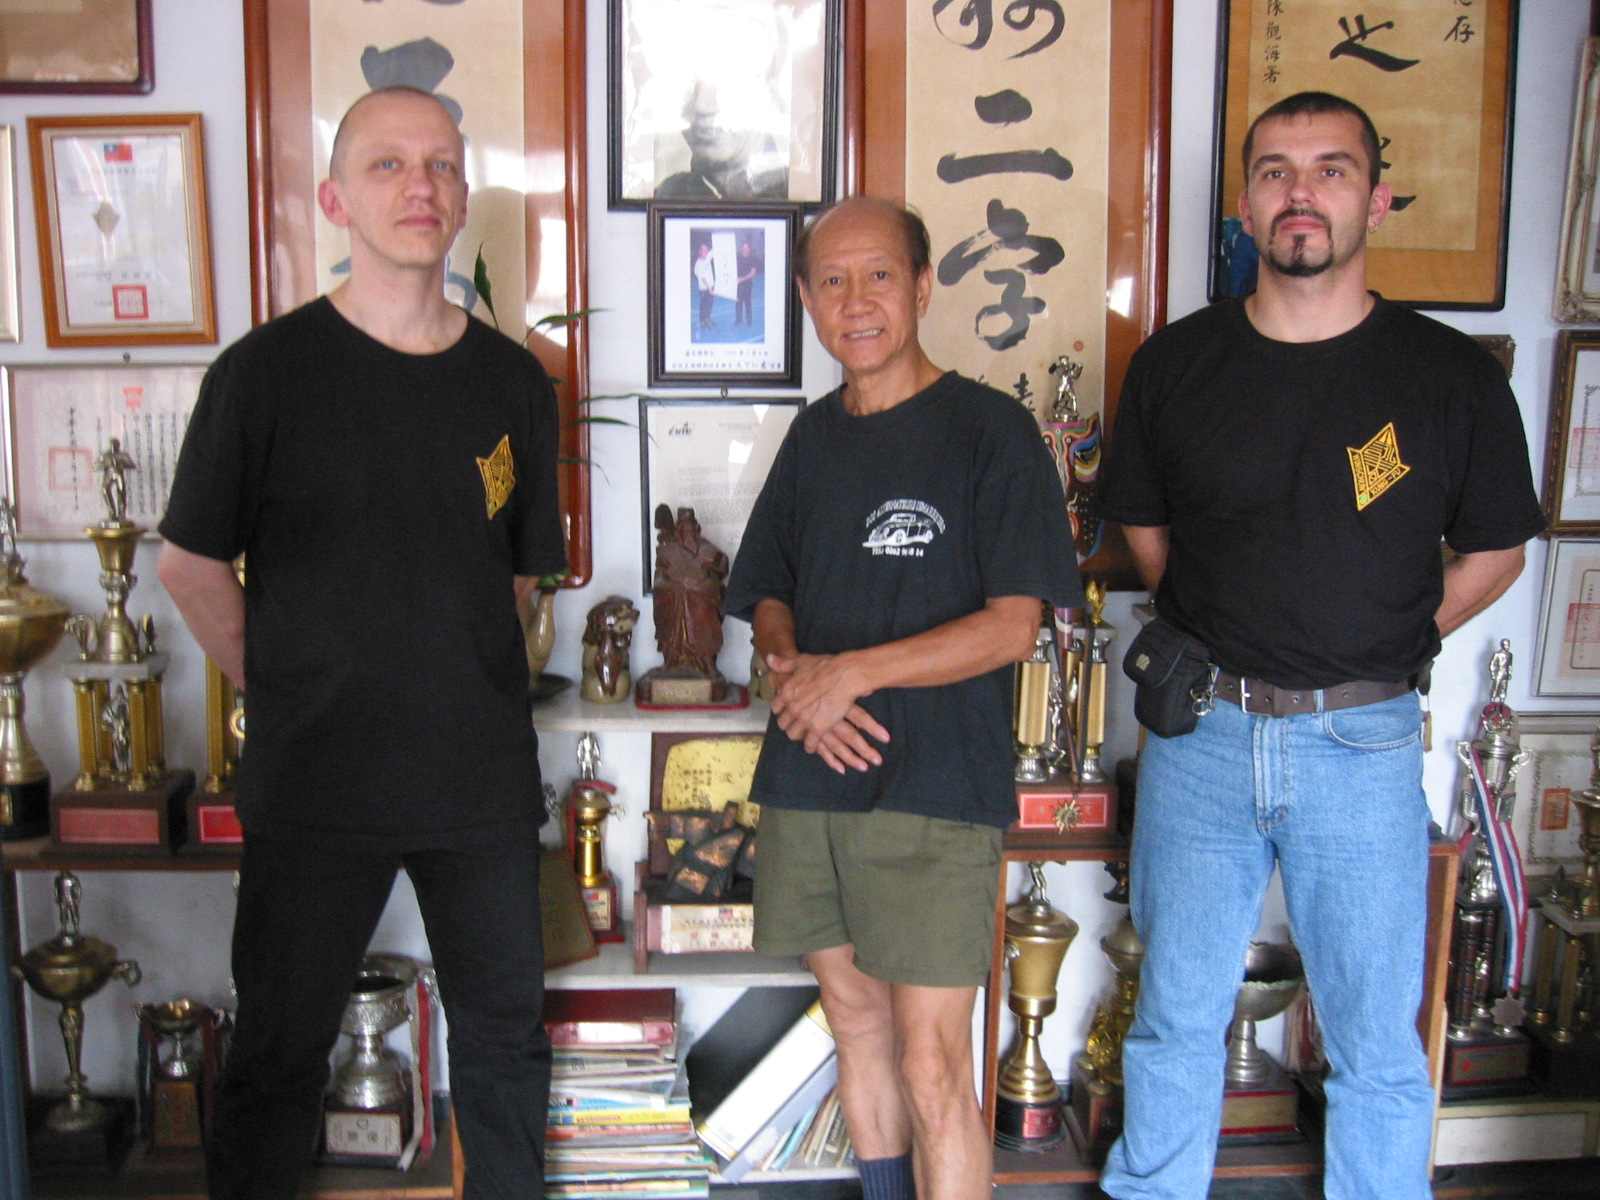 Andreas Zerndt, Lo Man Kam and Marc Debus in Taipeh